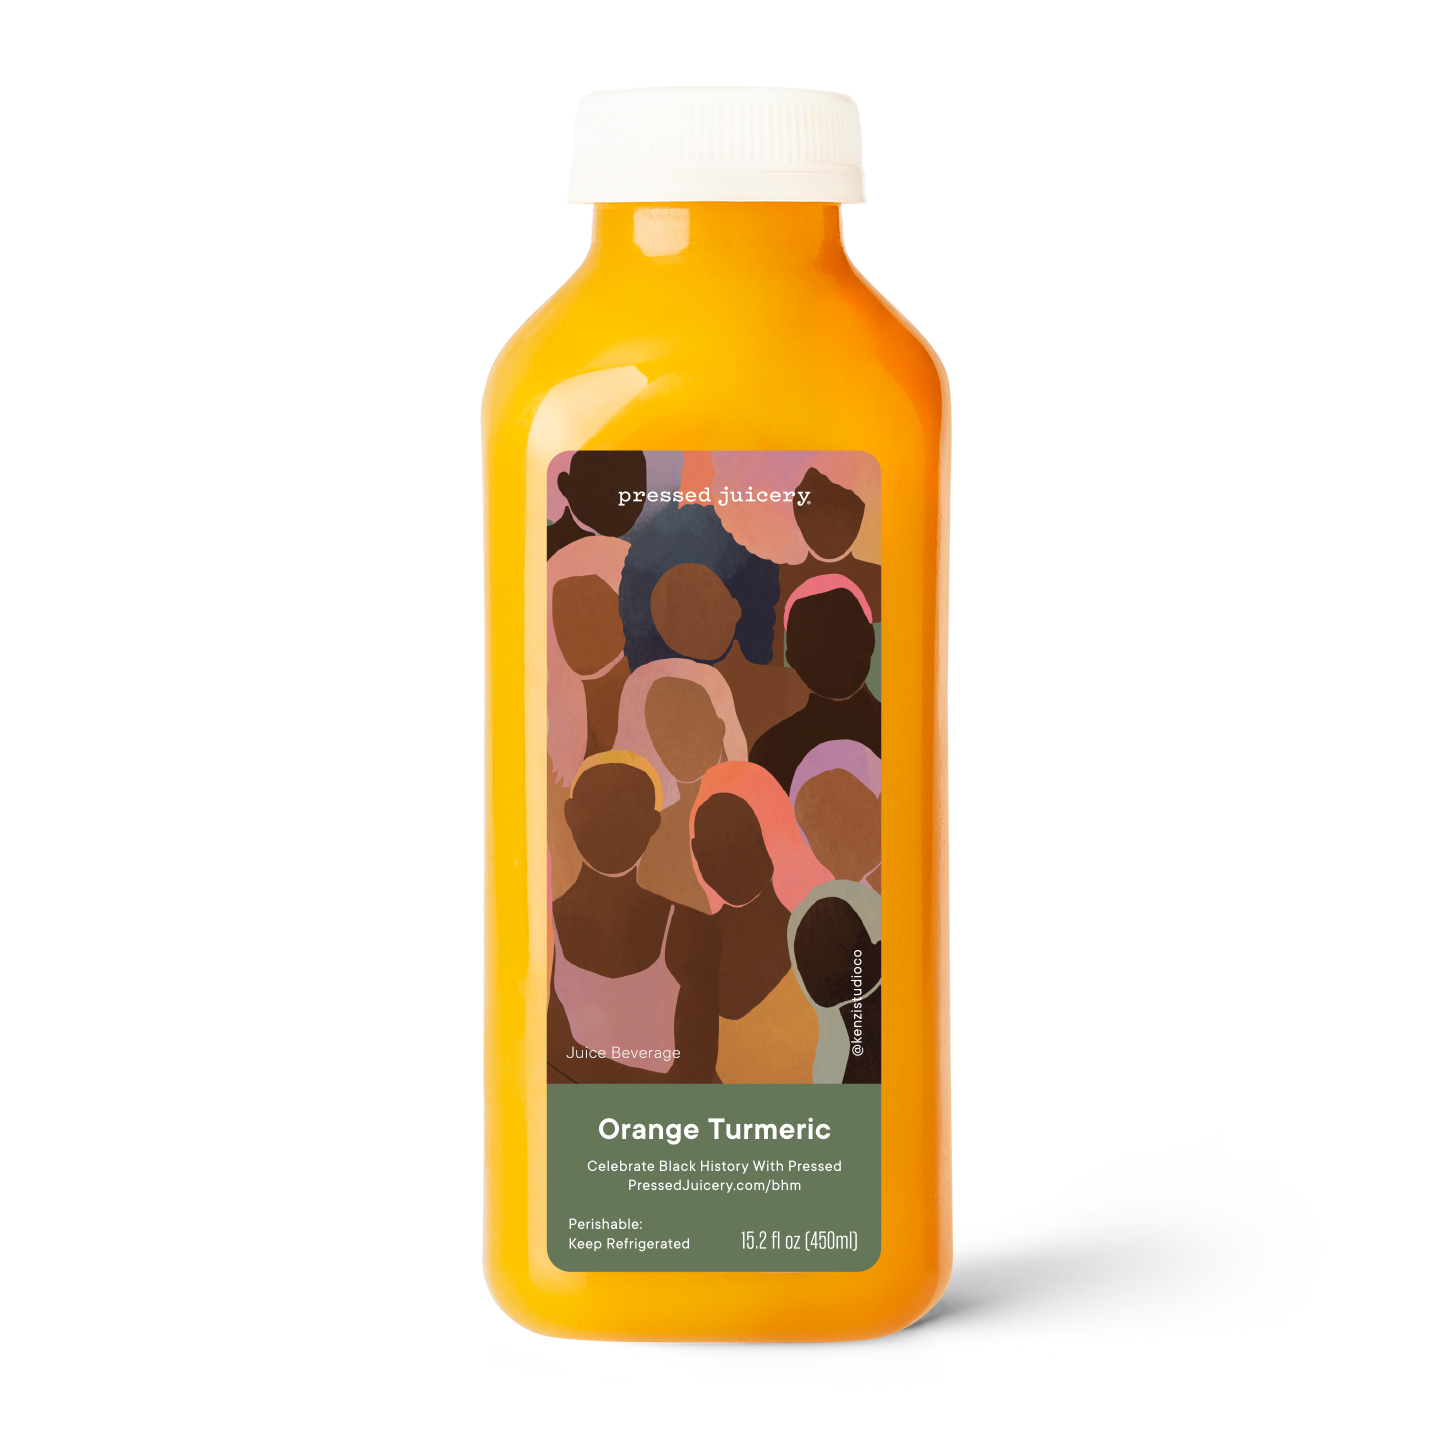 Orange Turmeric product image